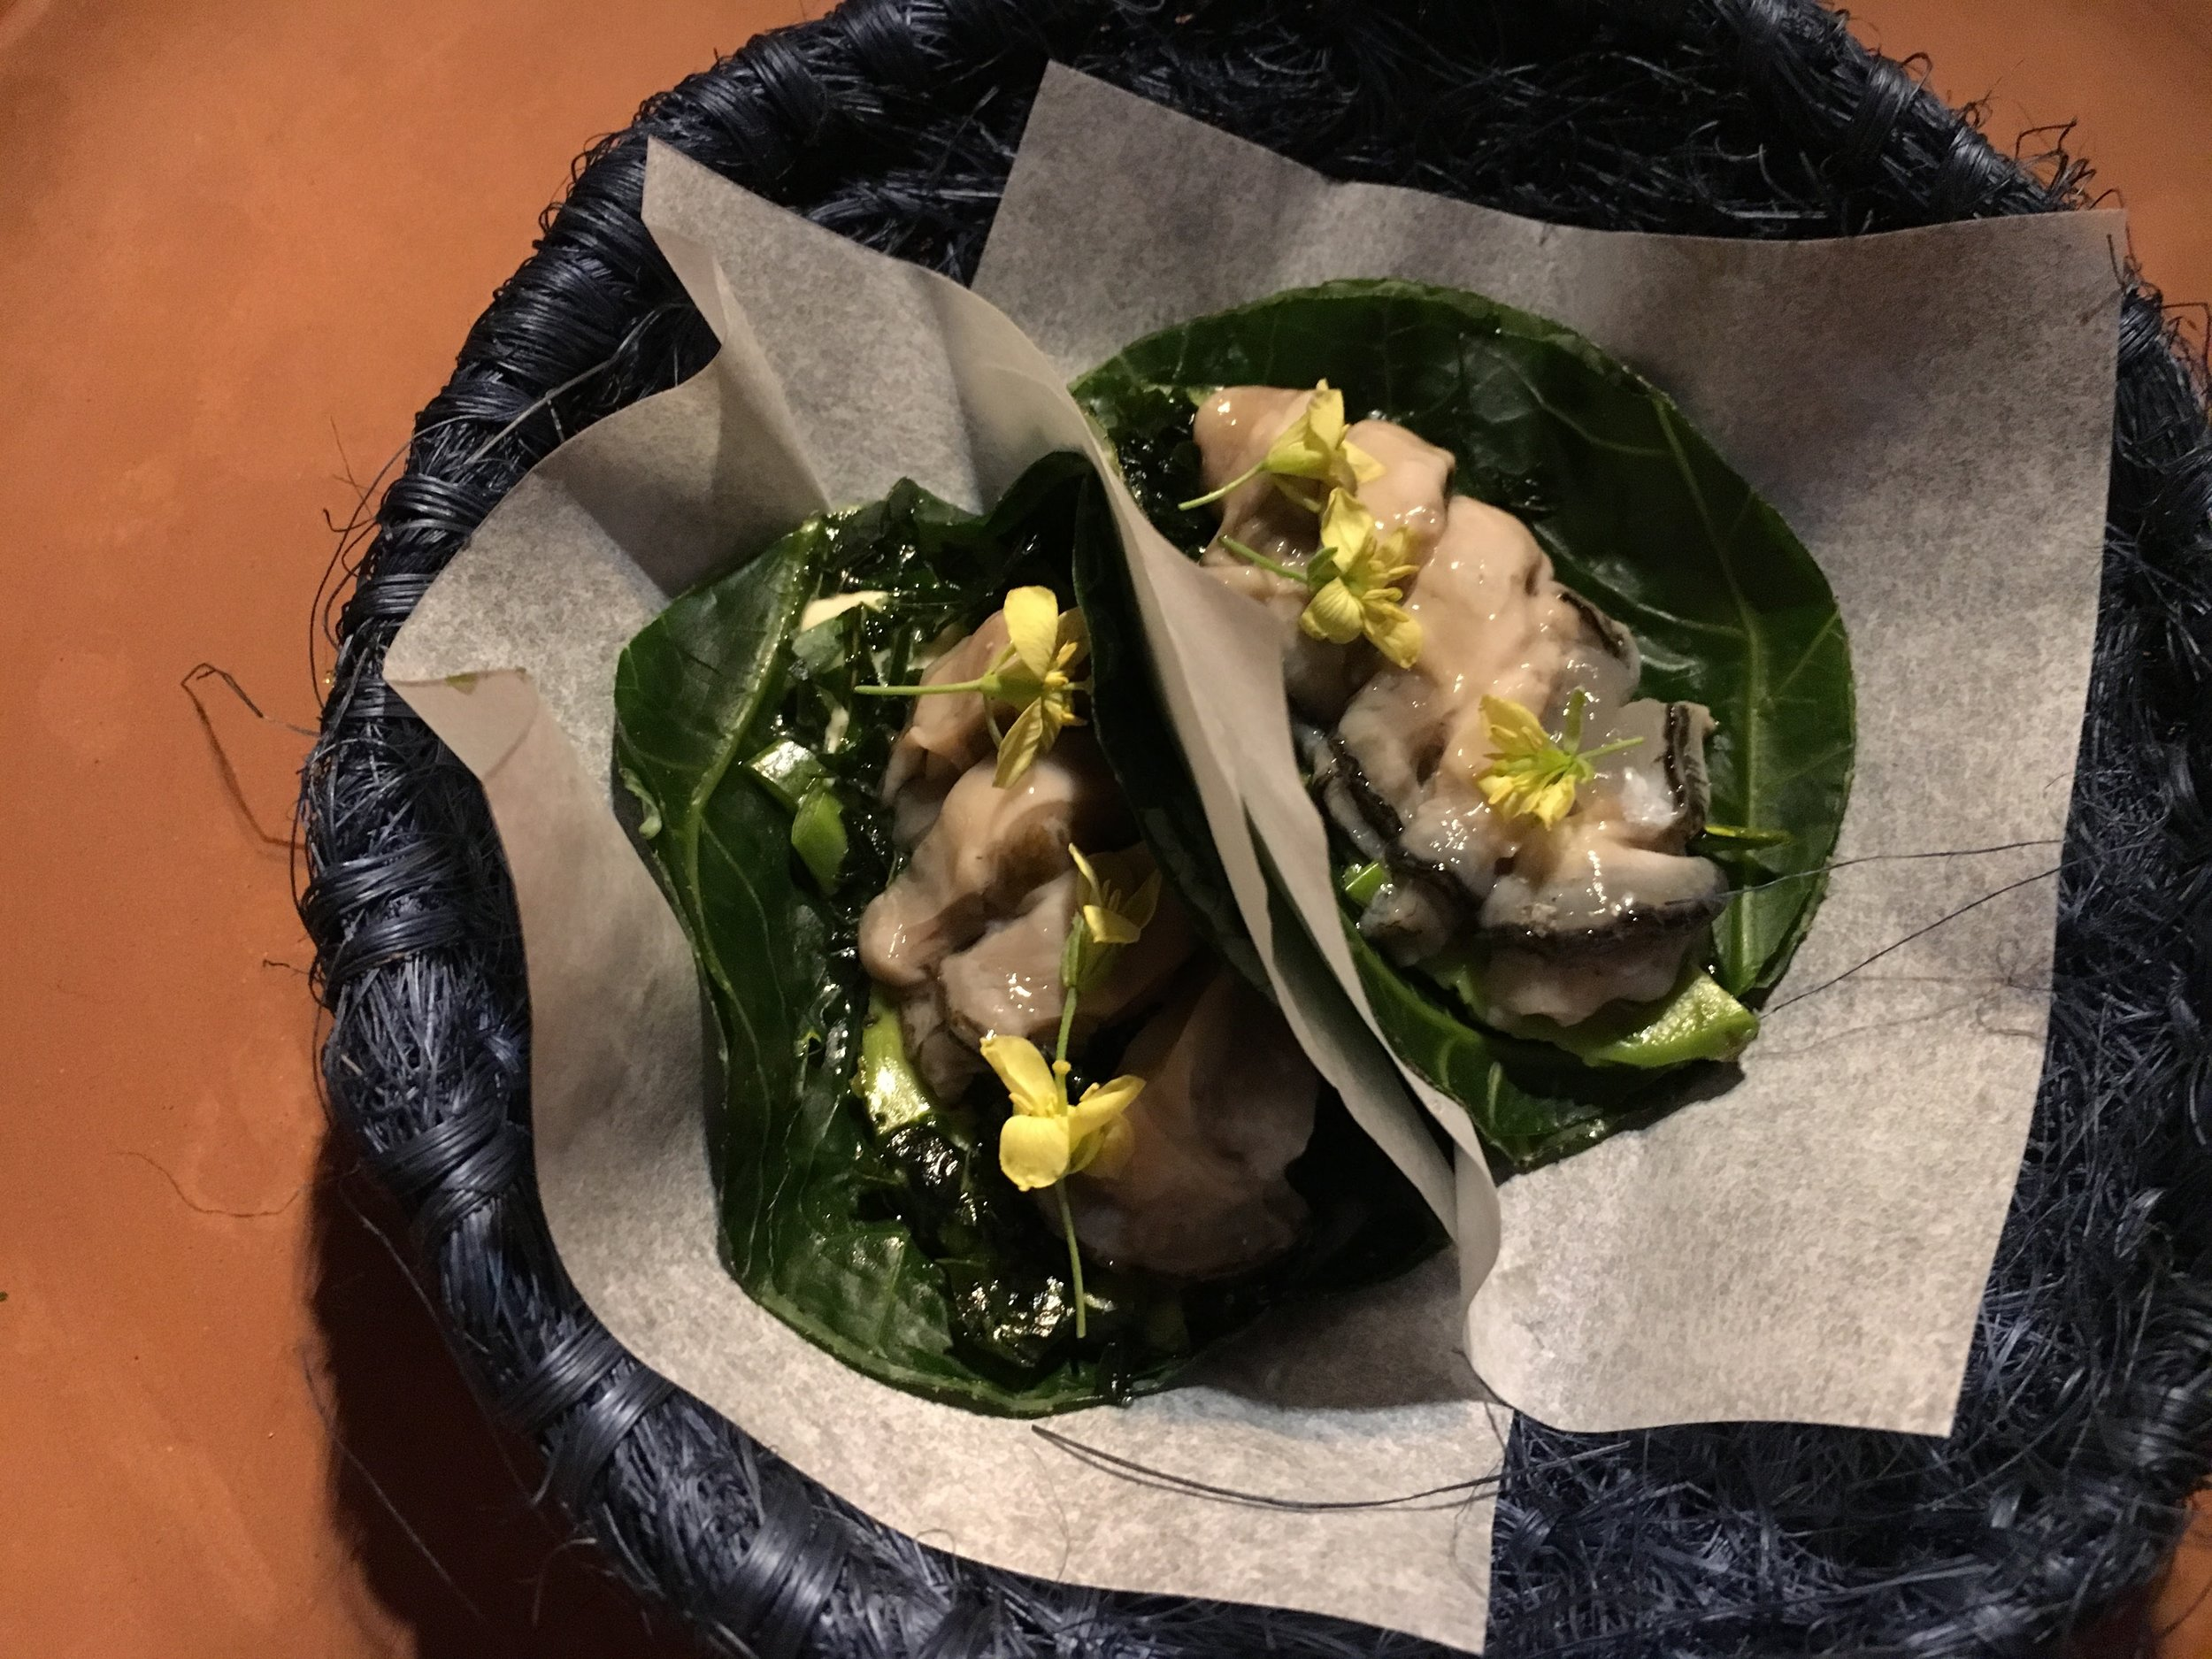 Oyster tacos in a collard leaf. I may or may not have had trouble with this one.